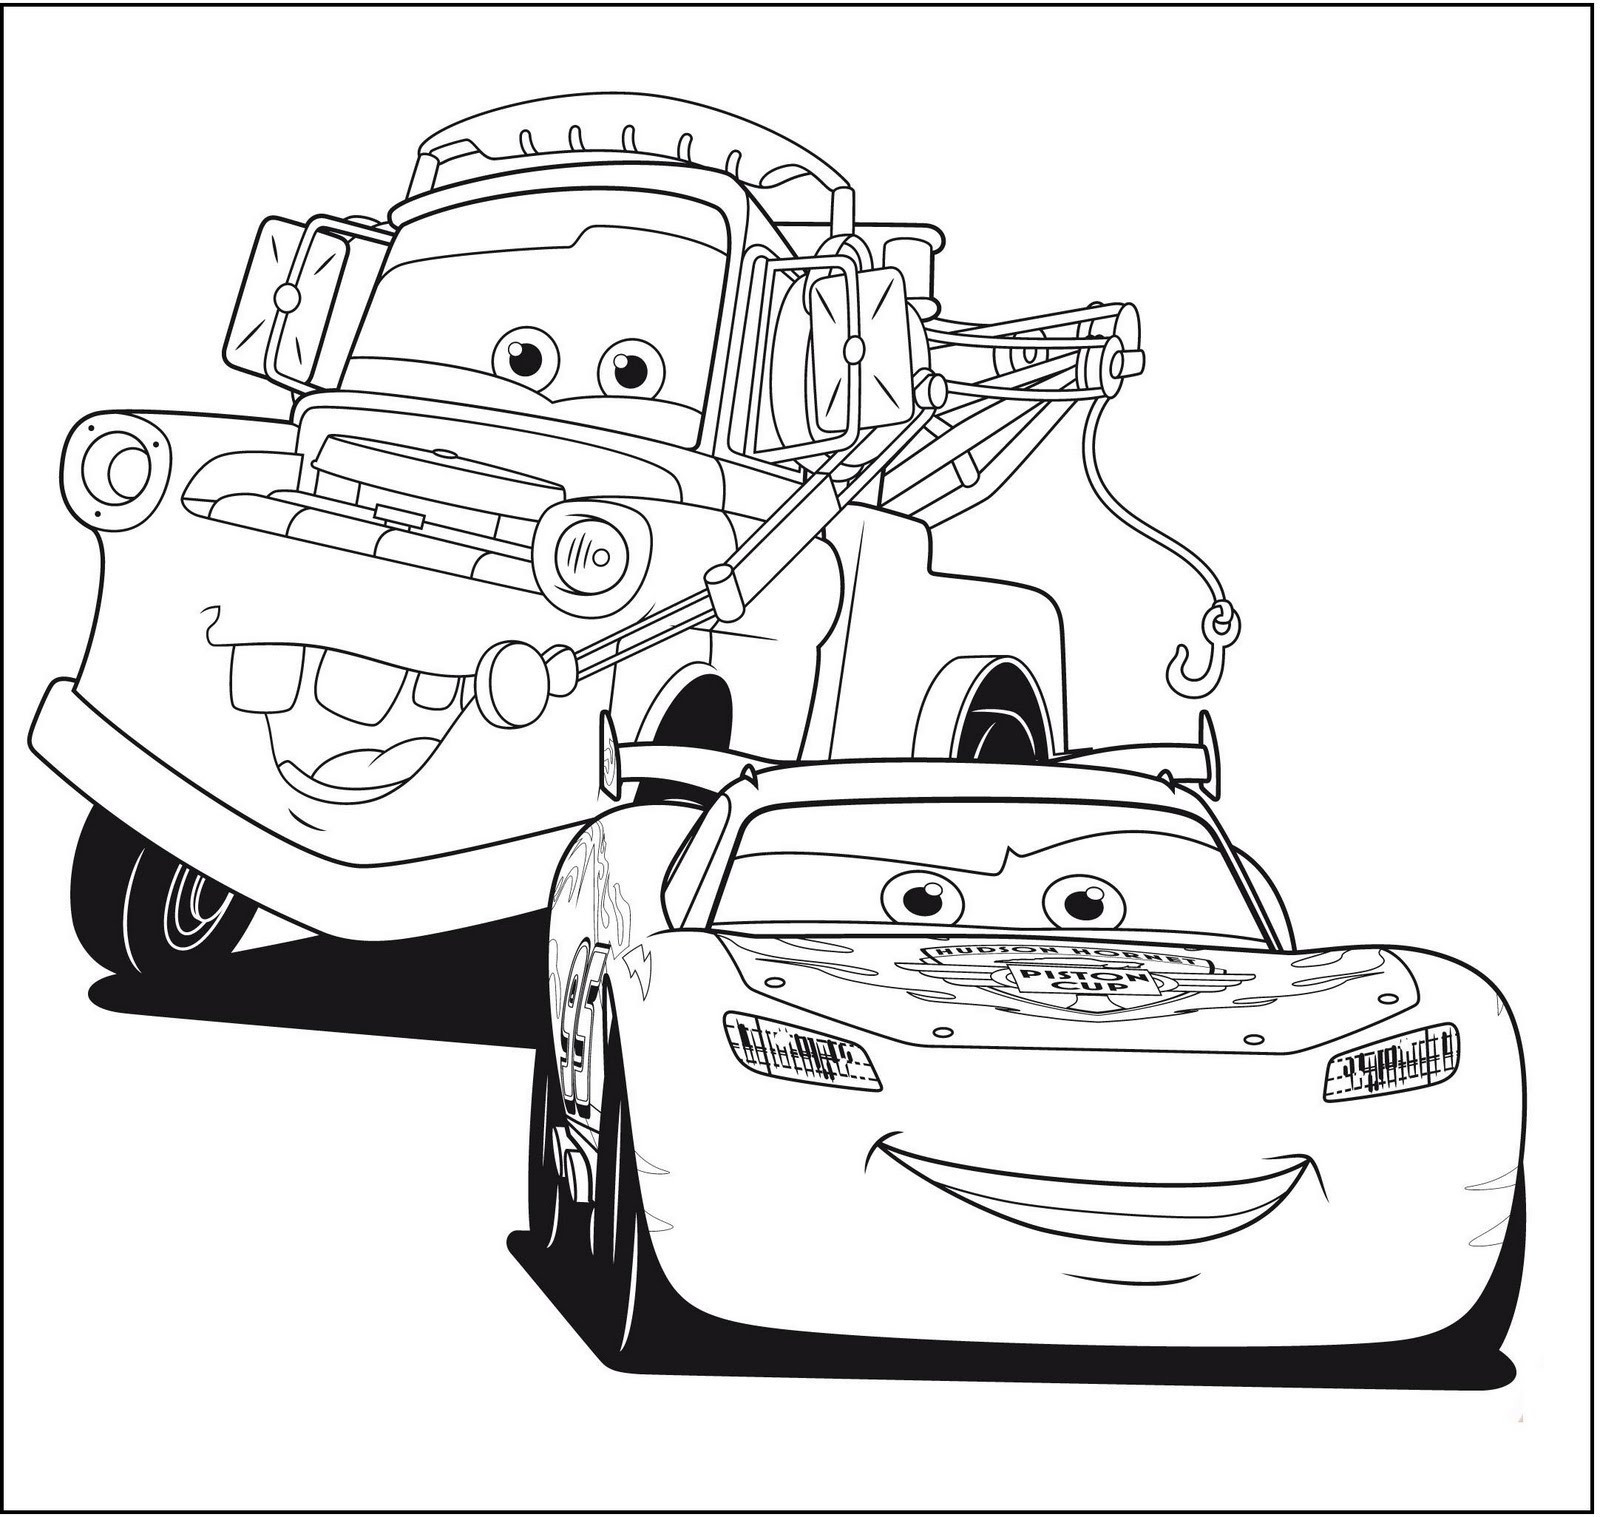 Cars Movie Mater Coloring Pages Page Kids Magnificent Disney Inside Collection Of Car Coloring Pages Disney Cars the Movie to Print Grig3 Download